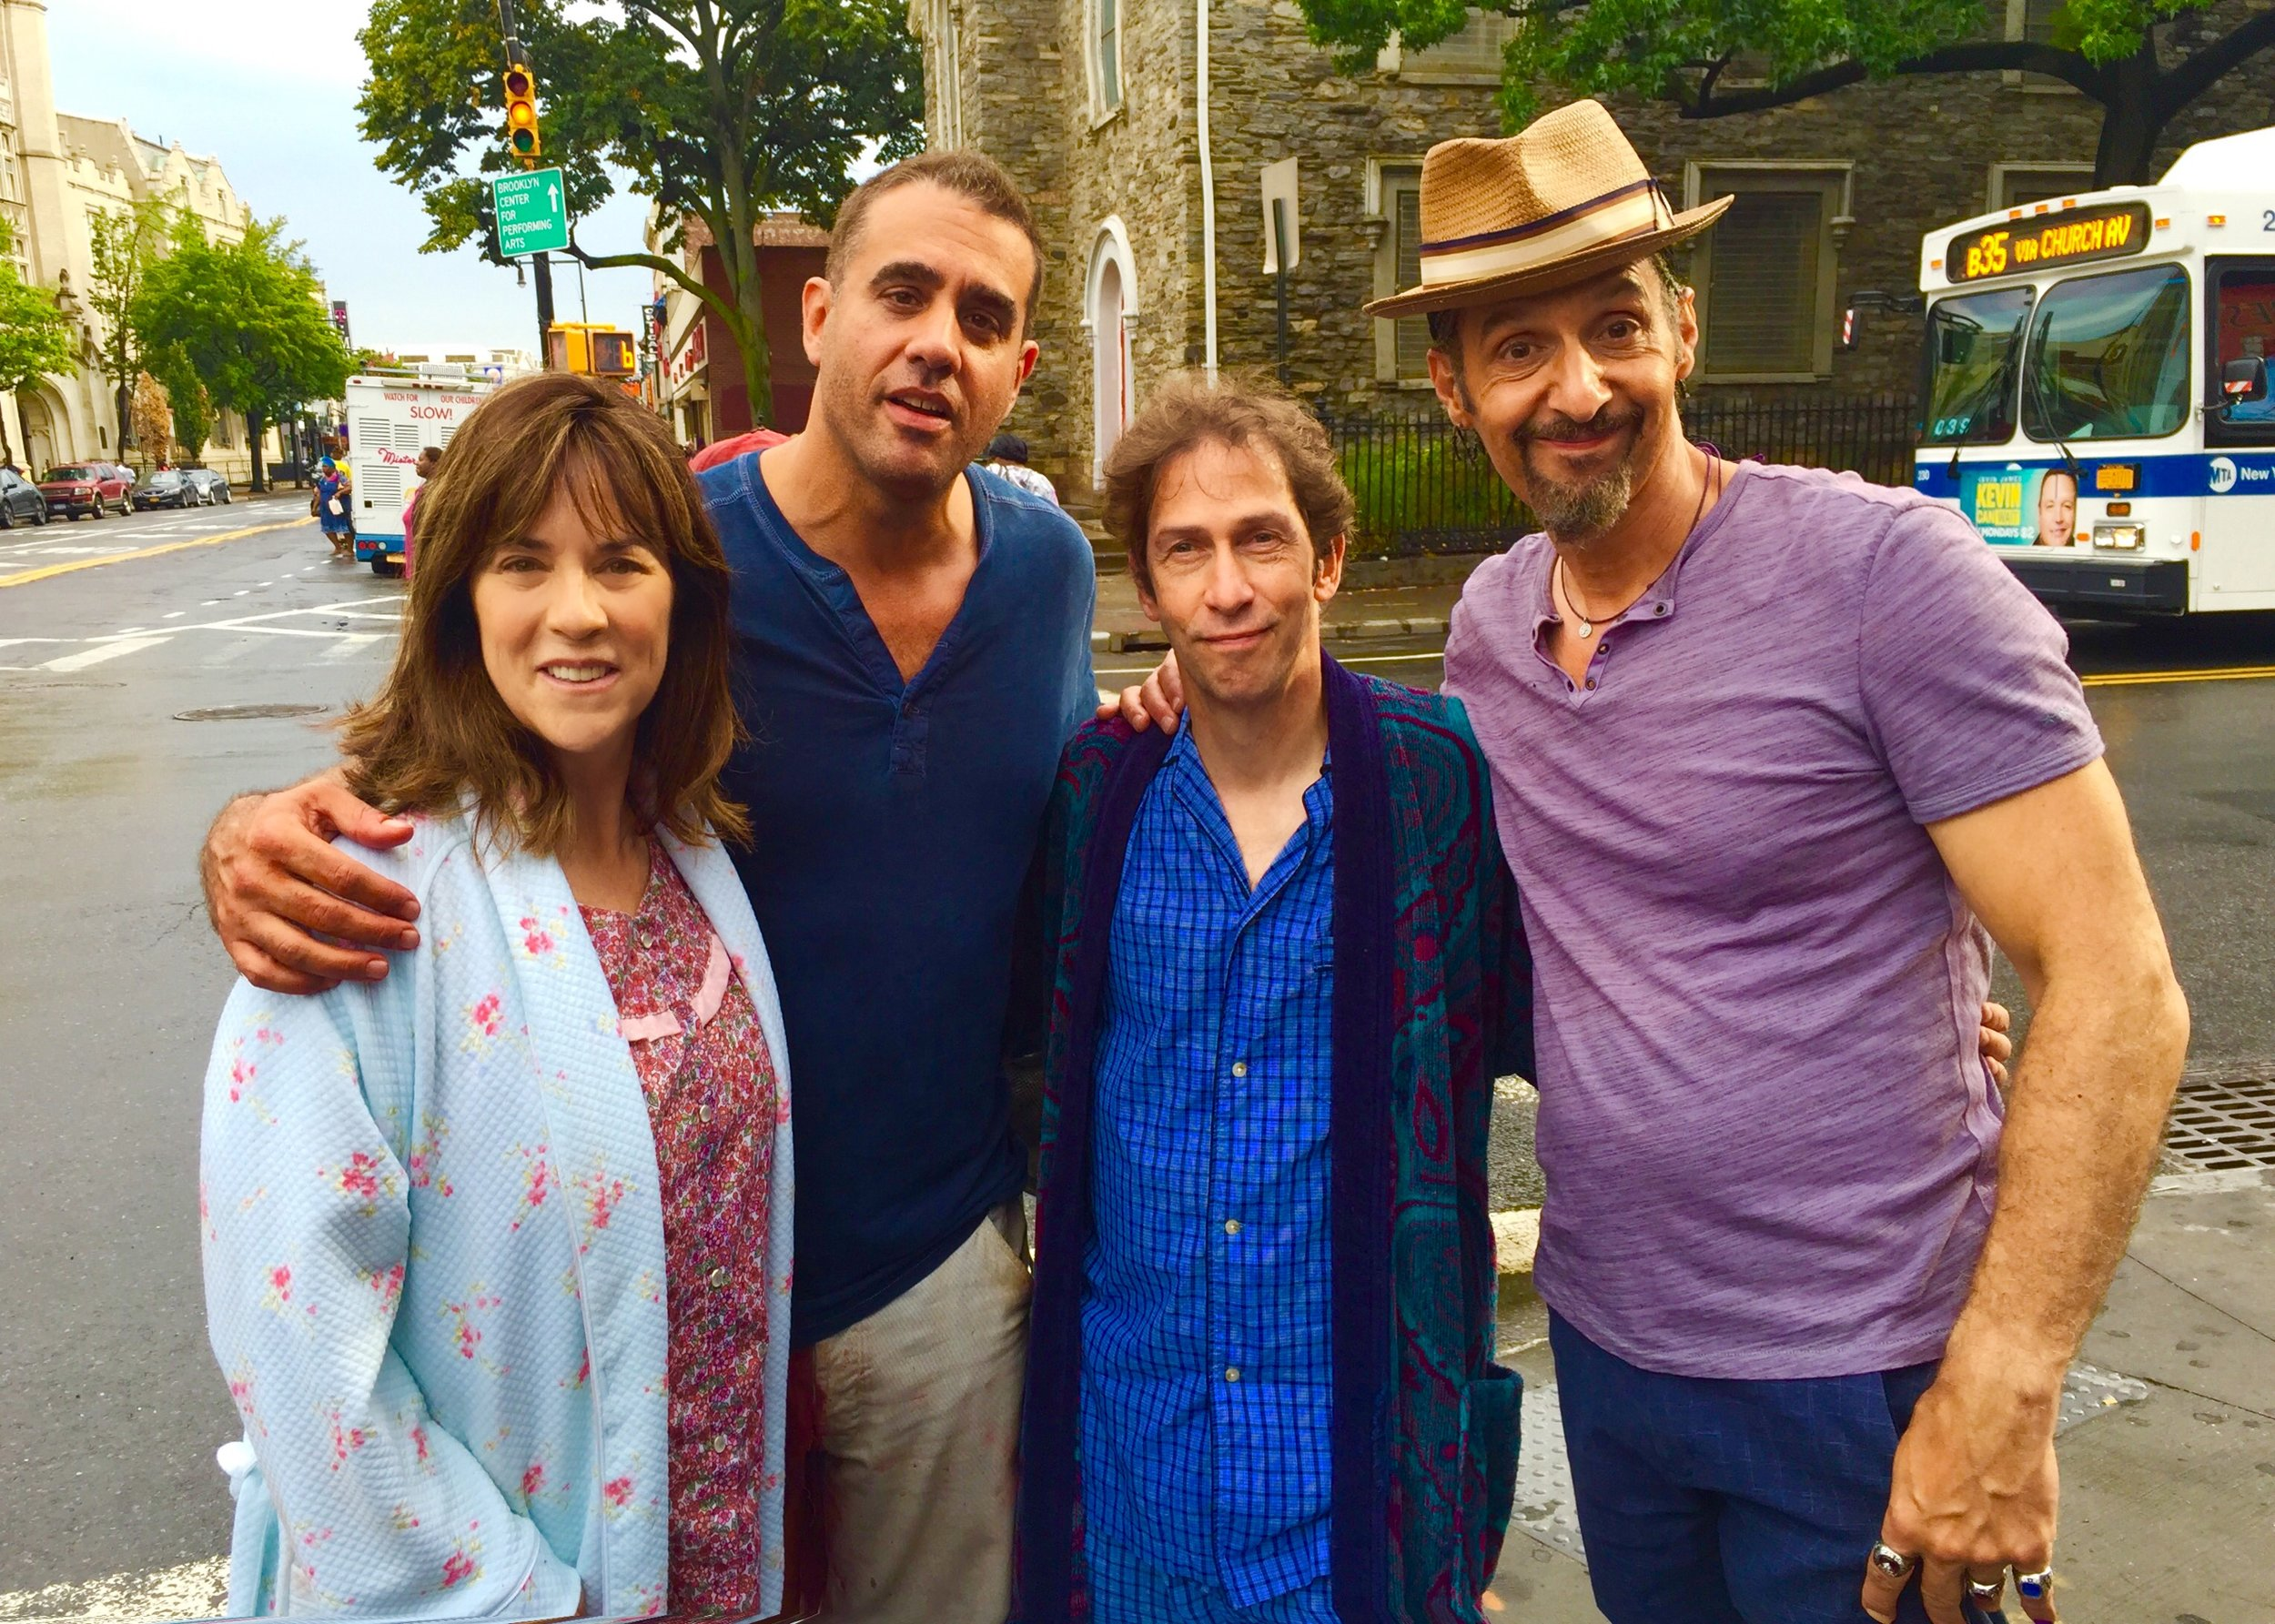 John Turturro's THE JESUS ROLLS, (formerly GOING PLACES). Filmed in 2016. Premieres 2020. I play Tim Blake Nelson's wife in a scene with John and Bobby Cannavale.